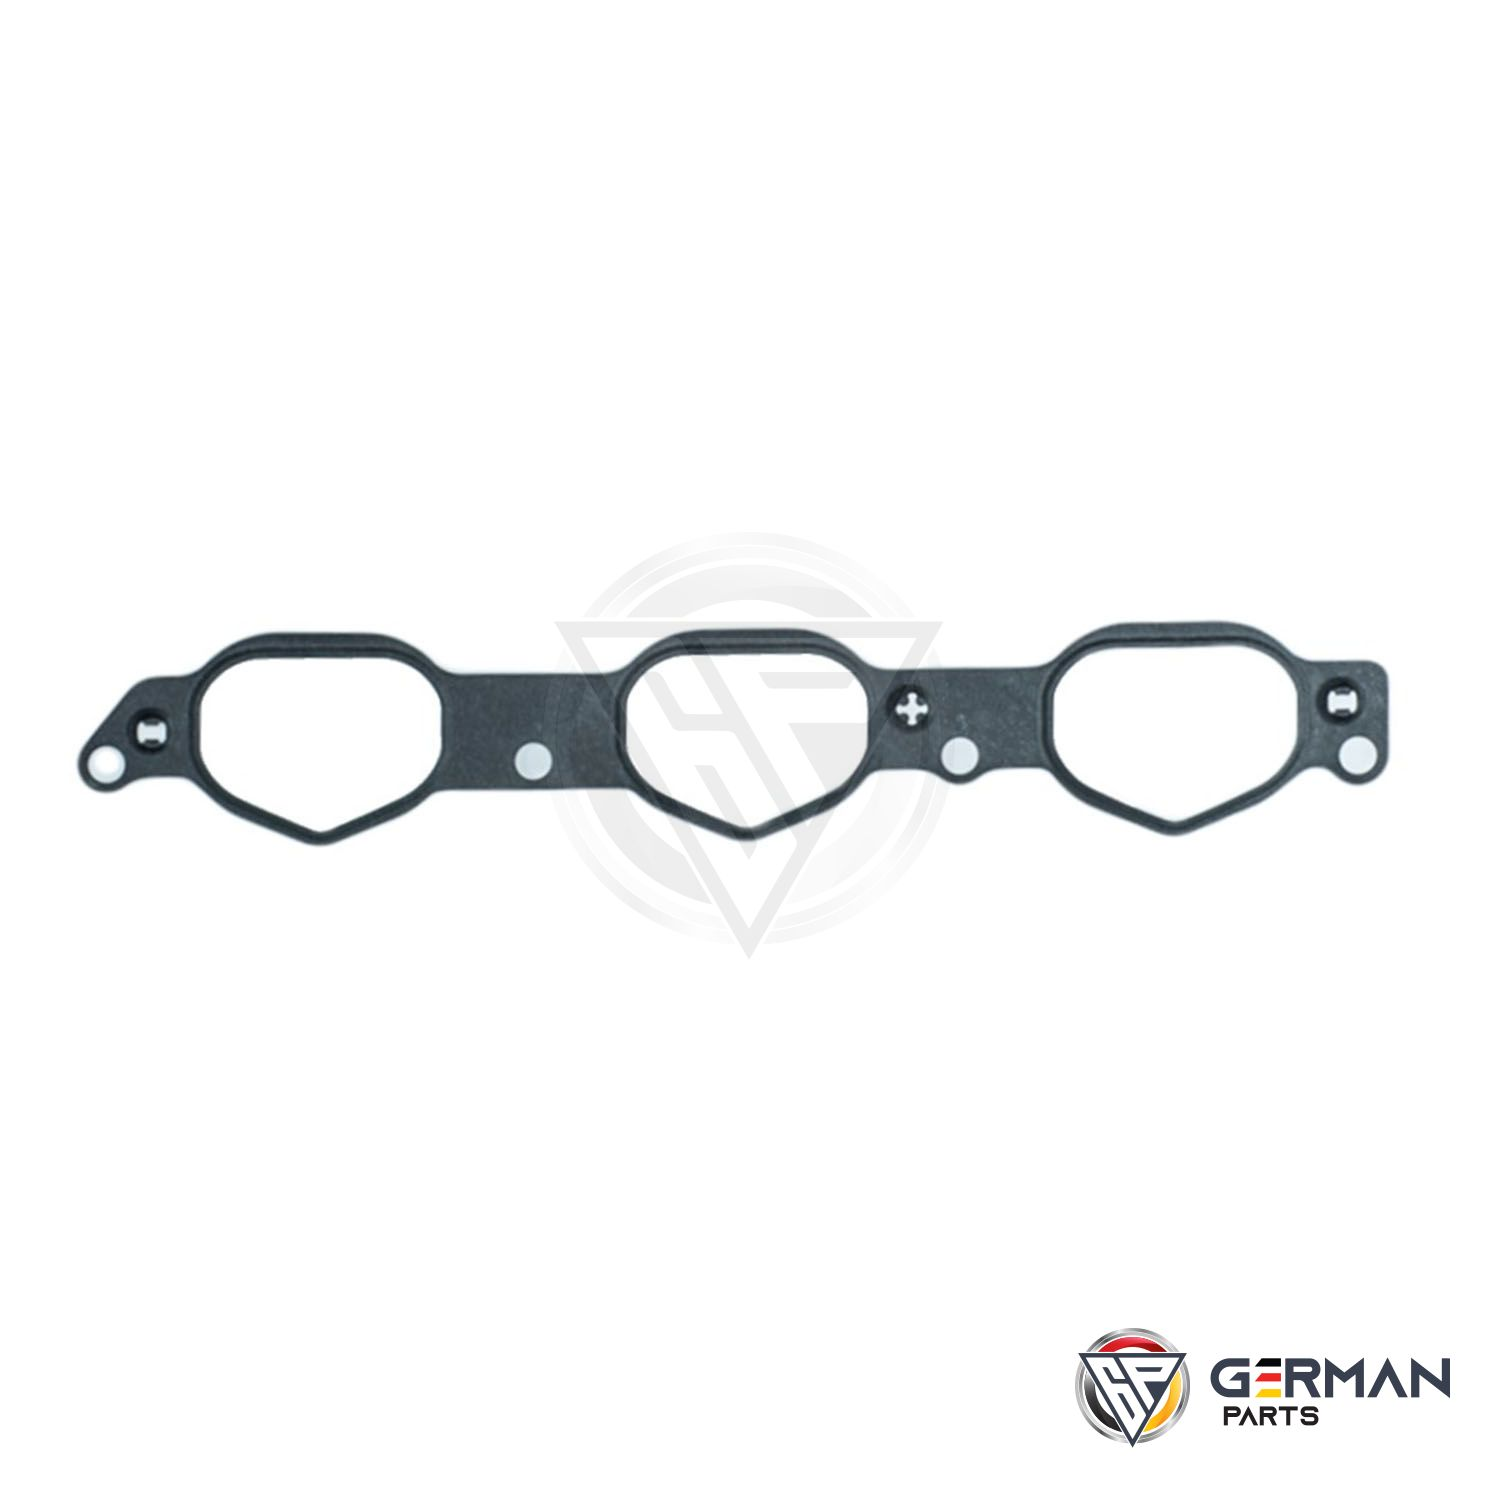 Buy Genuine Mercedes Benz Gasket-Intake Manifold To Cyl Left 2721412280 - German Parts